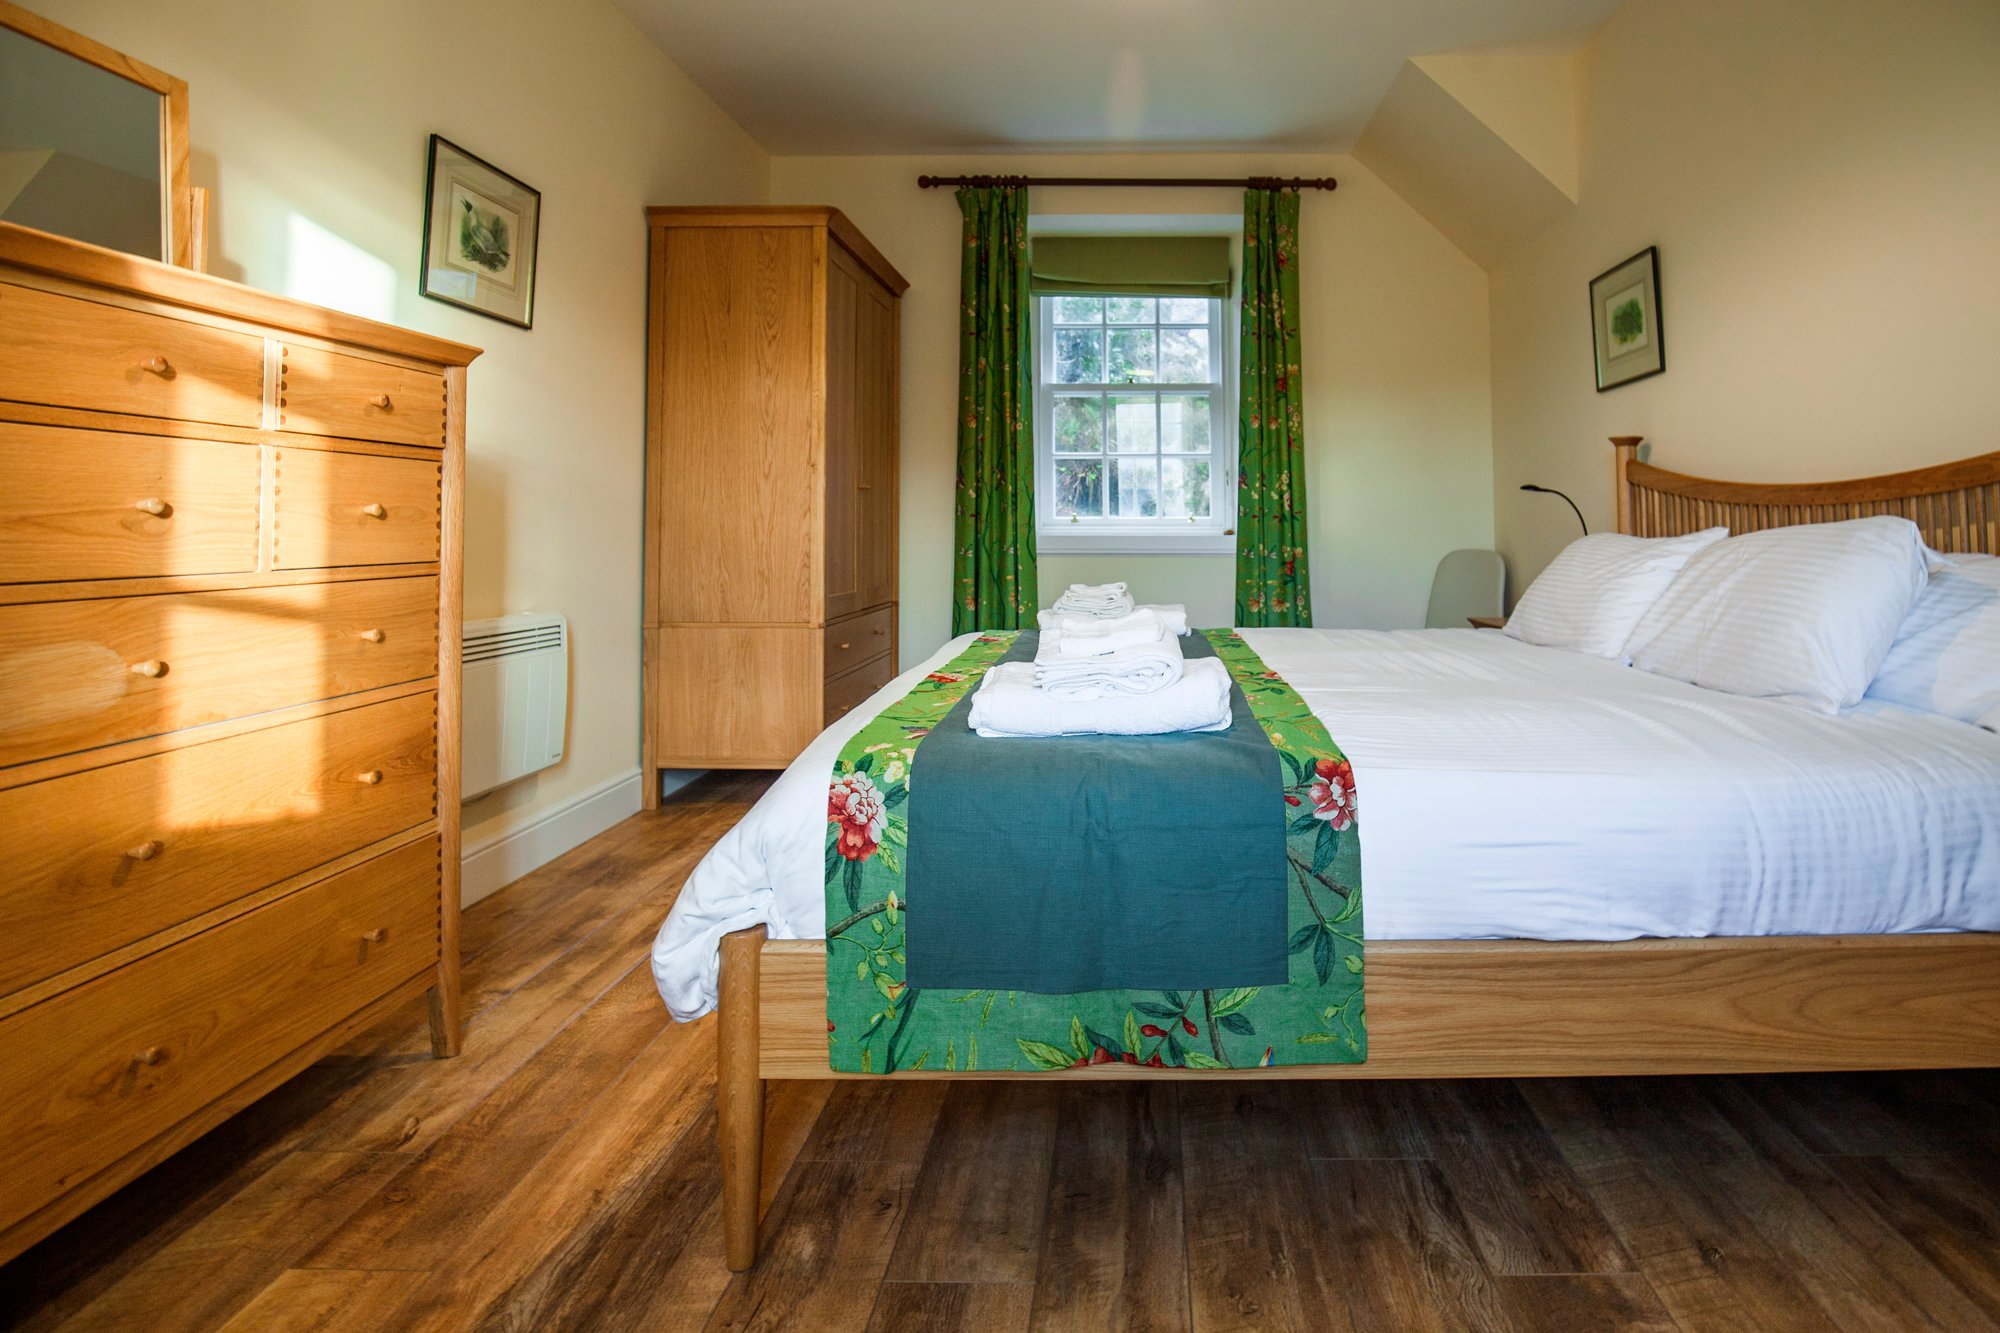 Amhuinnsuidhe holiday cottages. Castle Cottage for up to six people with views across Loch Leosavay to South Harris. King bedroom 1.